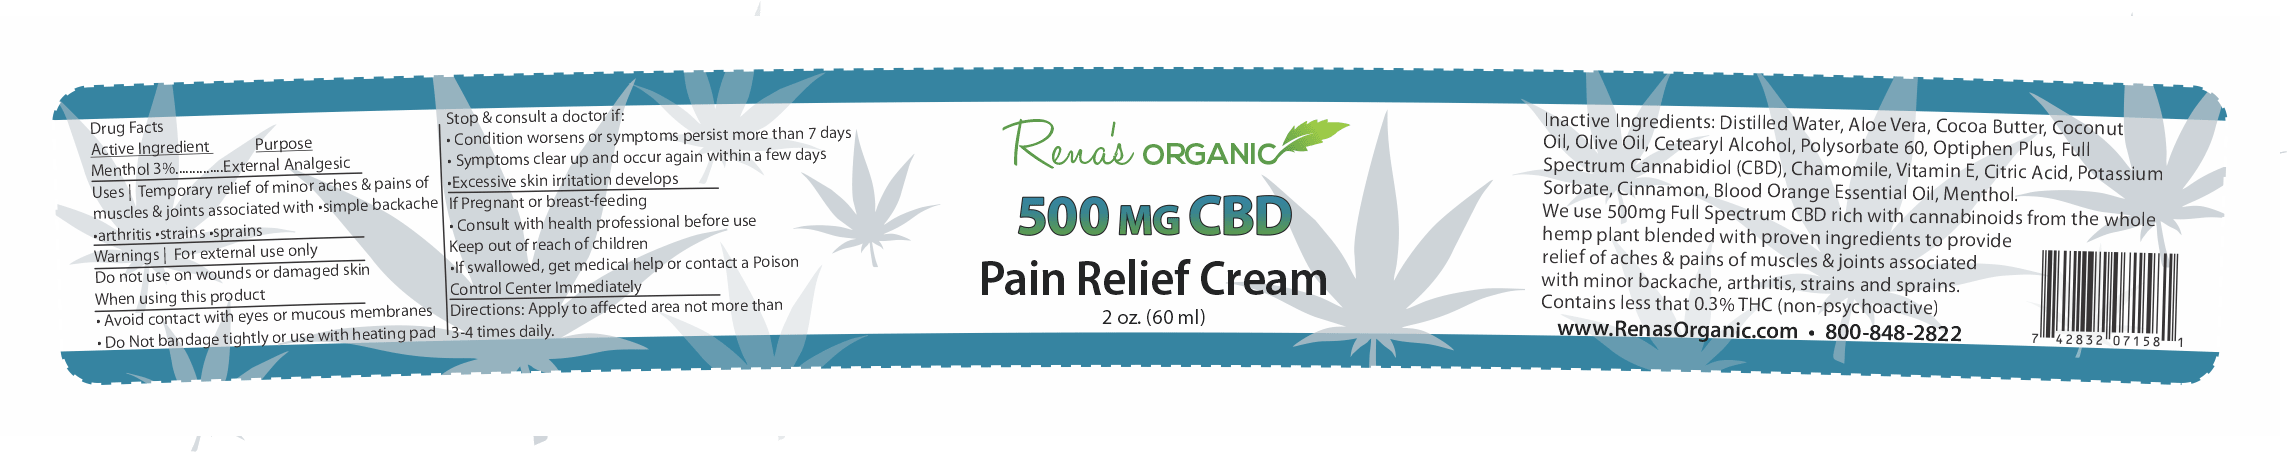 RO 500mg-CBD Pain Cream